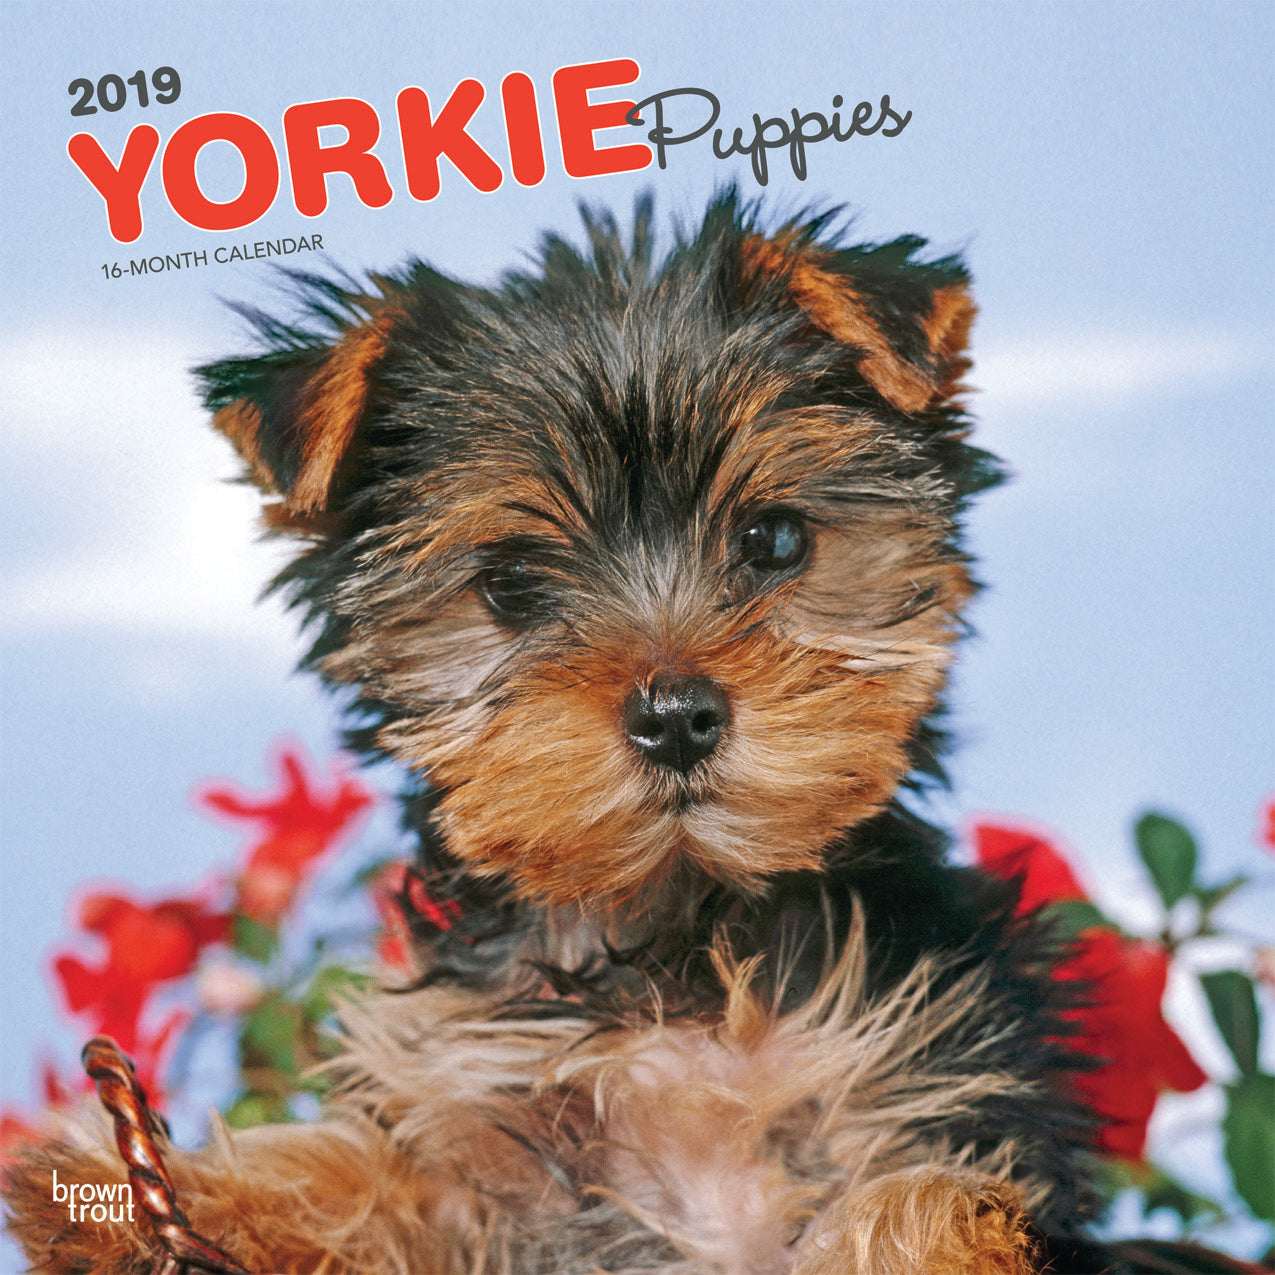 Yorkshire Terrier Puppies 2019 Wall Calendar